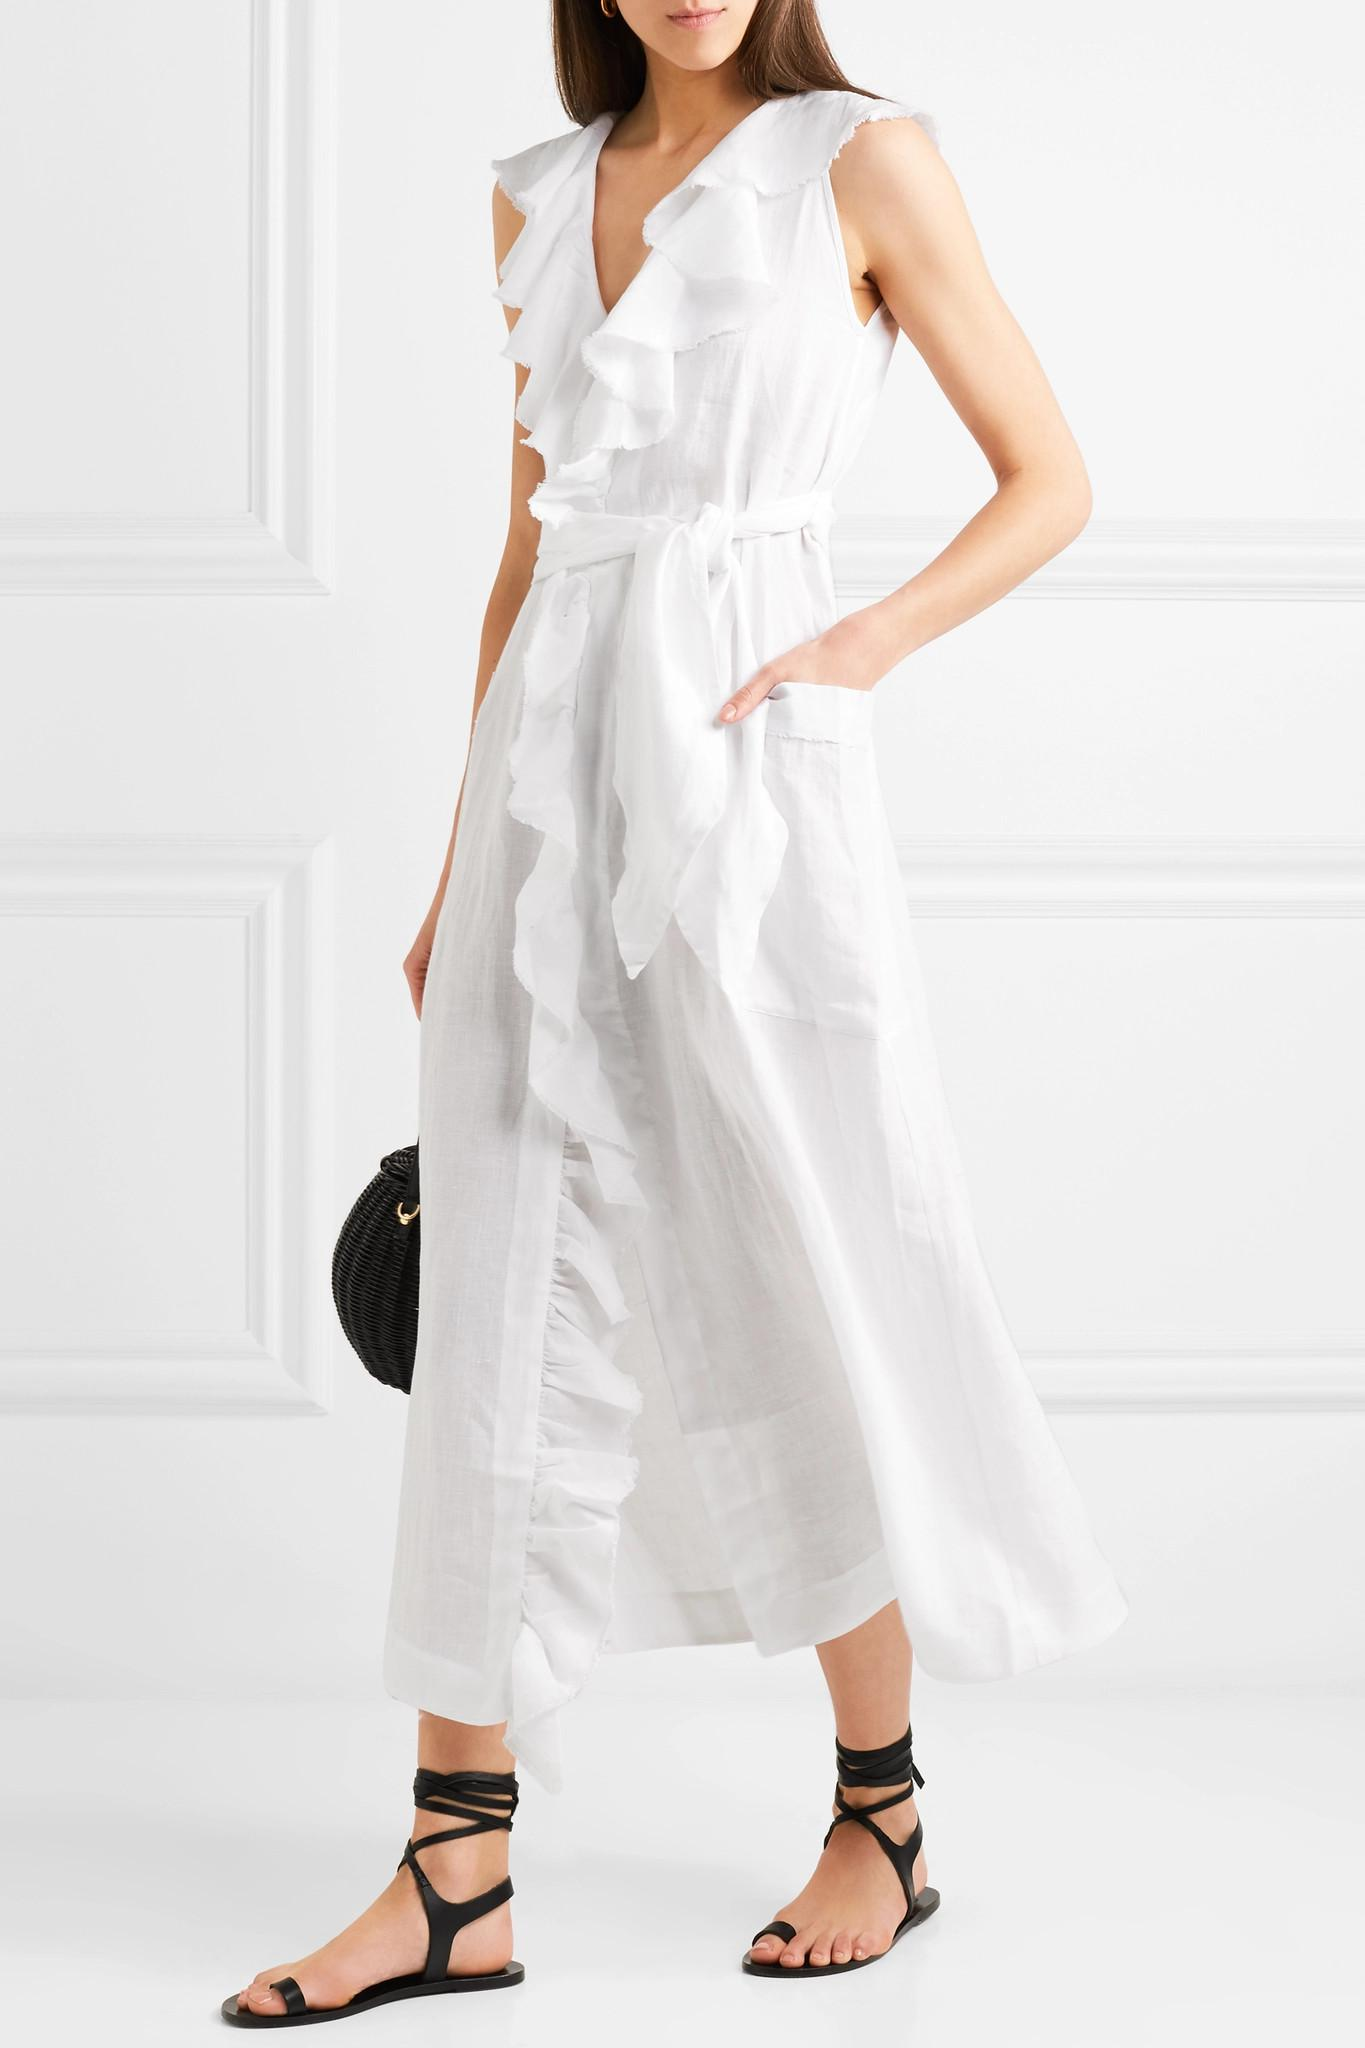 dd4d5b3a31a Three Graces London - White Mable Ruffled Linen Midi Dress - Lyst. View  fullscreen